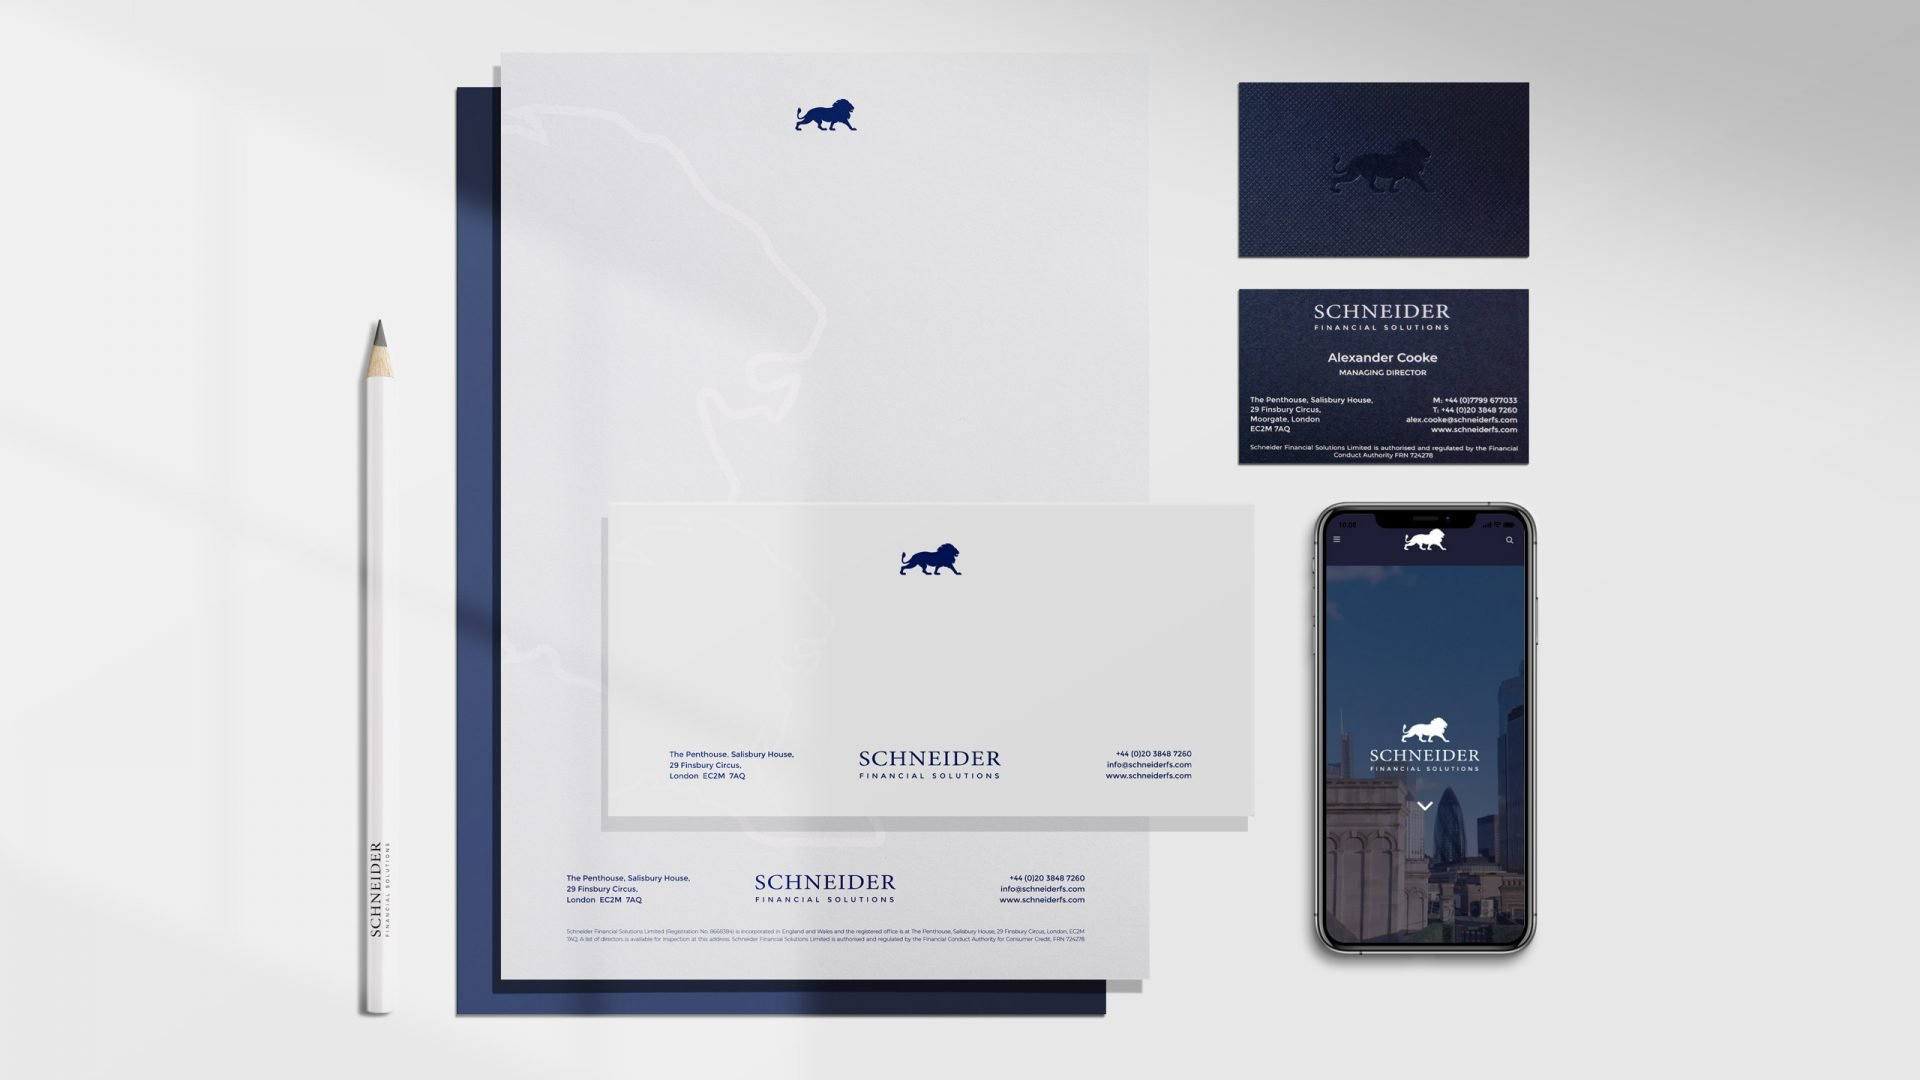 Crate47 Schneider Financial Services rebranding and website design - Financial Brand design